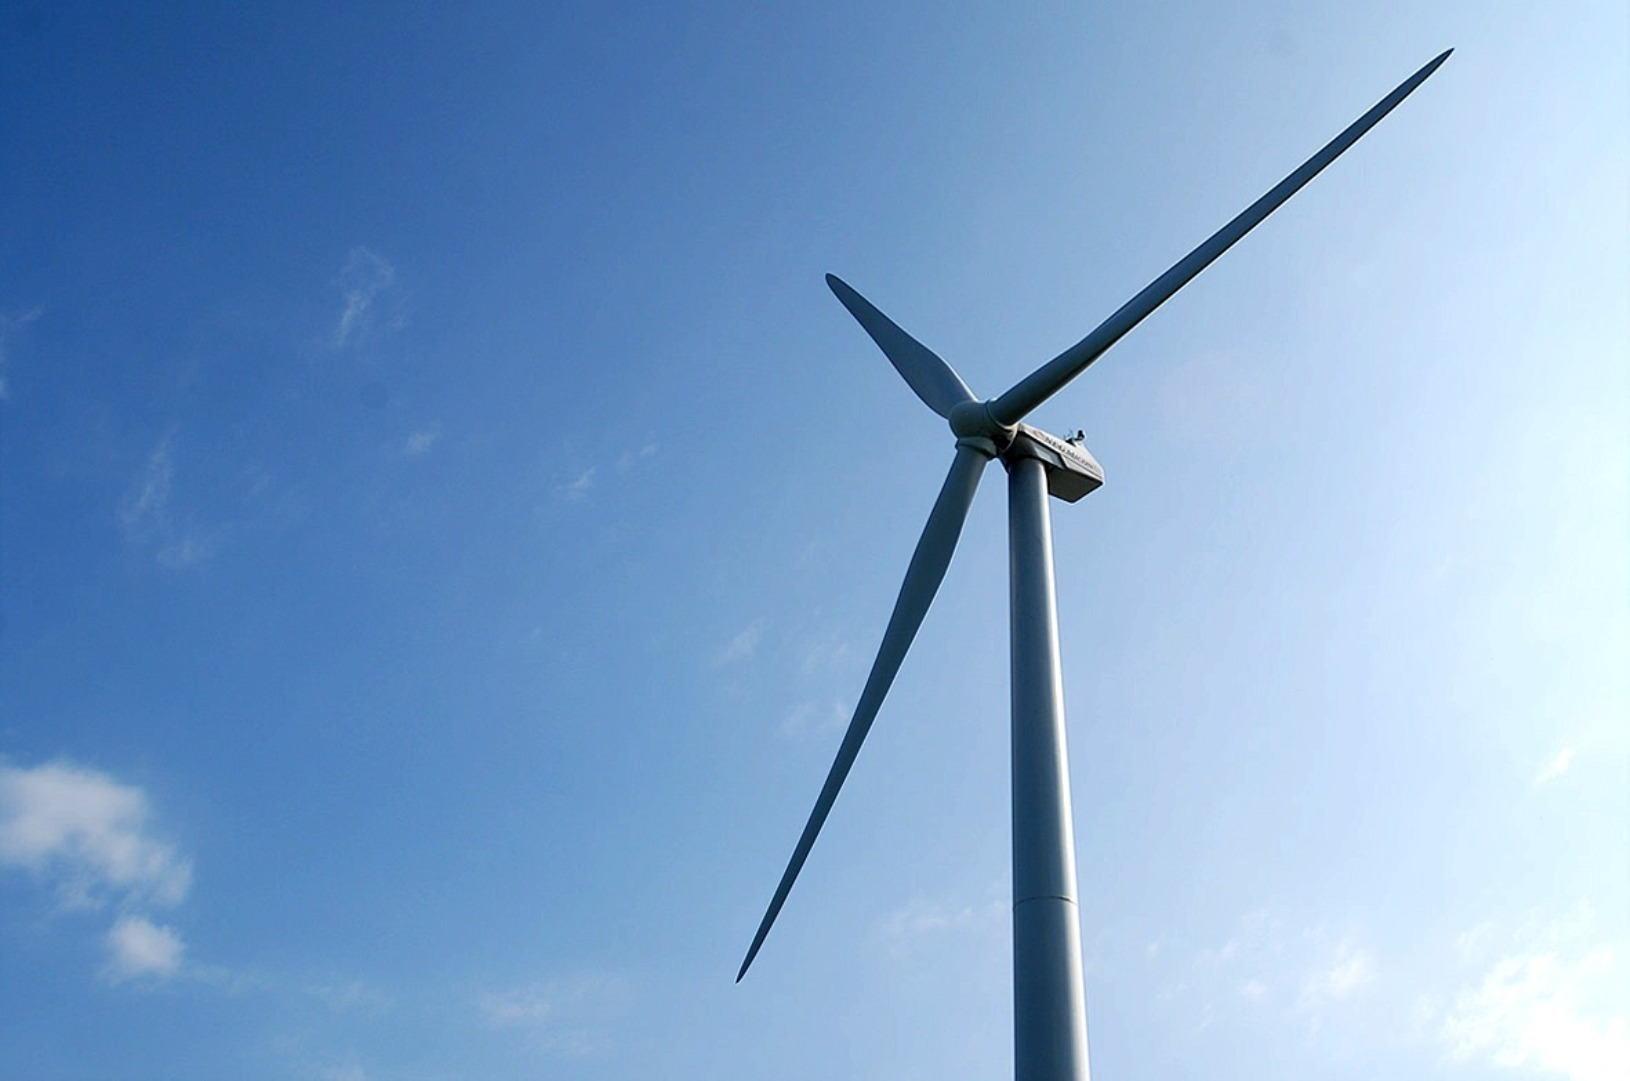 Wind farm developers pledge to work with local communities to reduce disruption during construction of new turbines